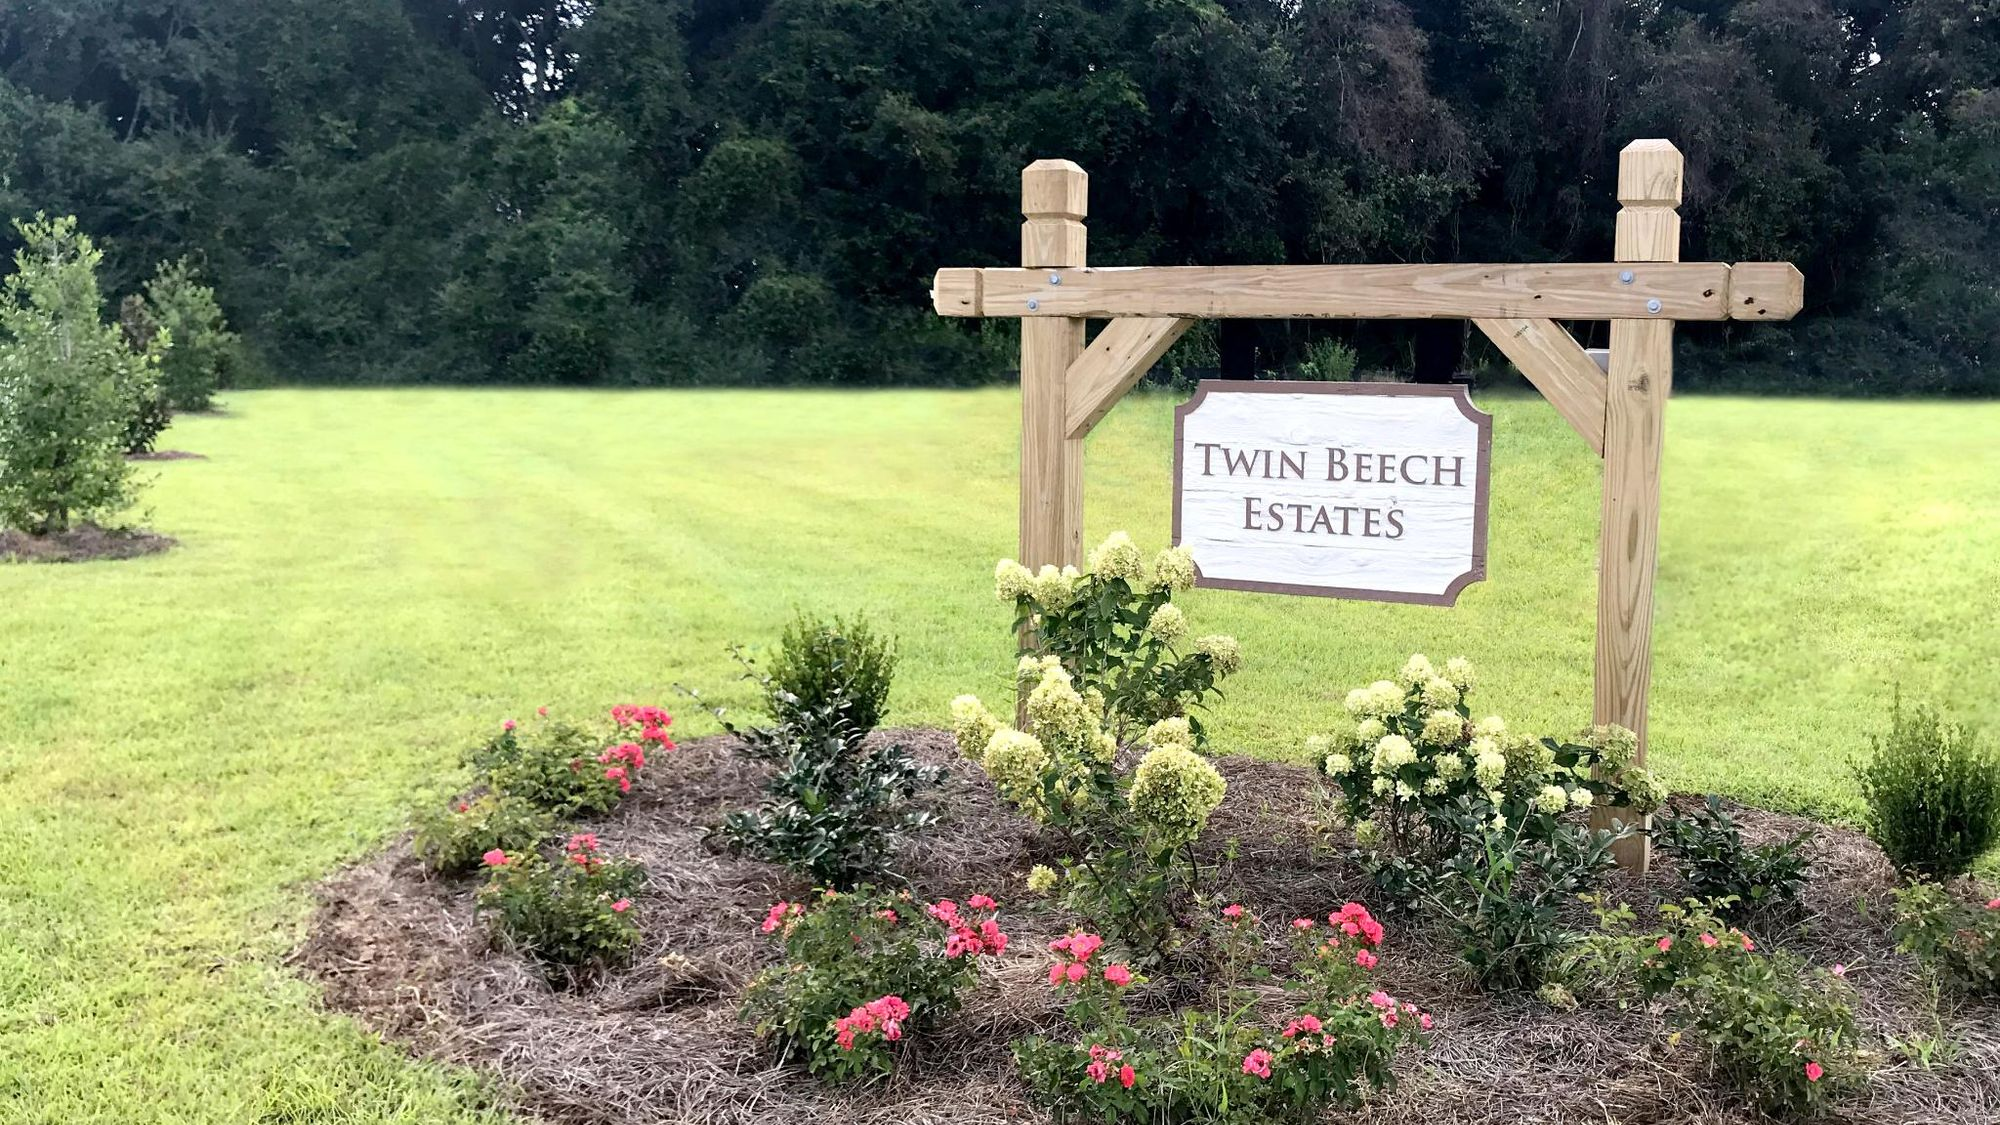 Entrance sign - Twin Beech Estates - Fairhope, AL